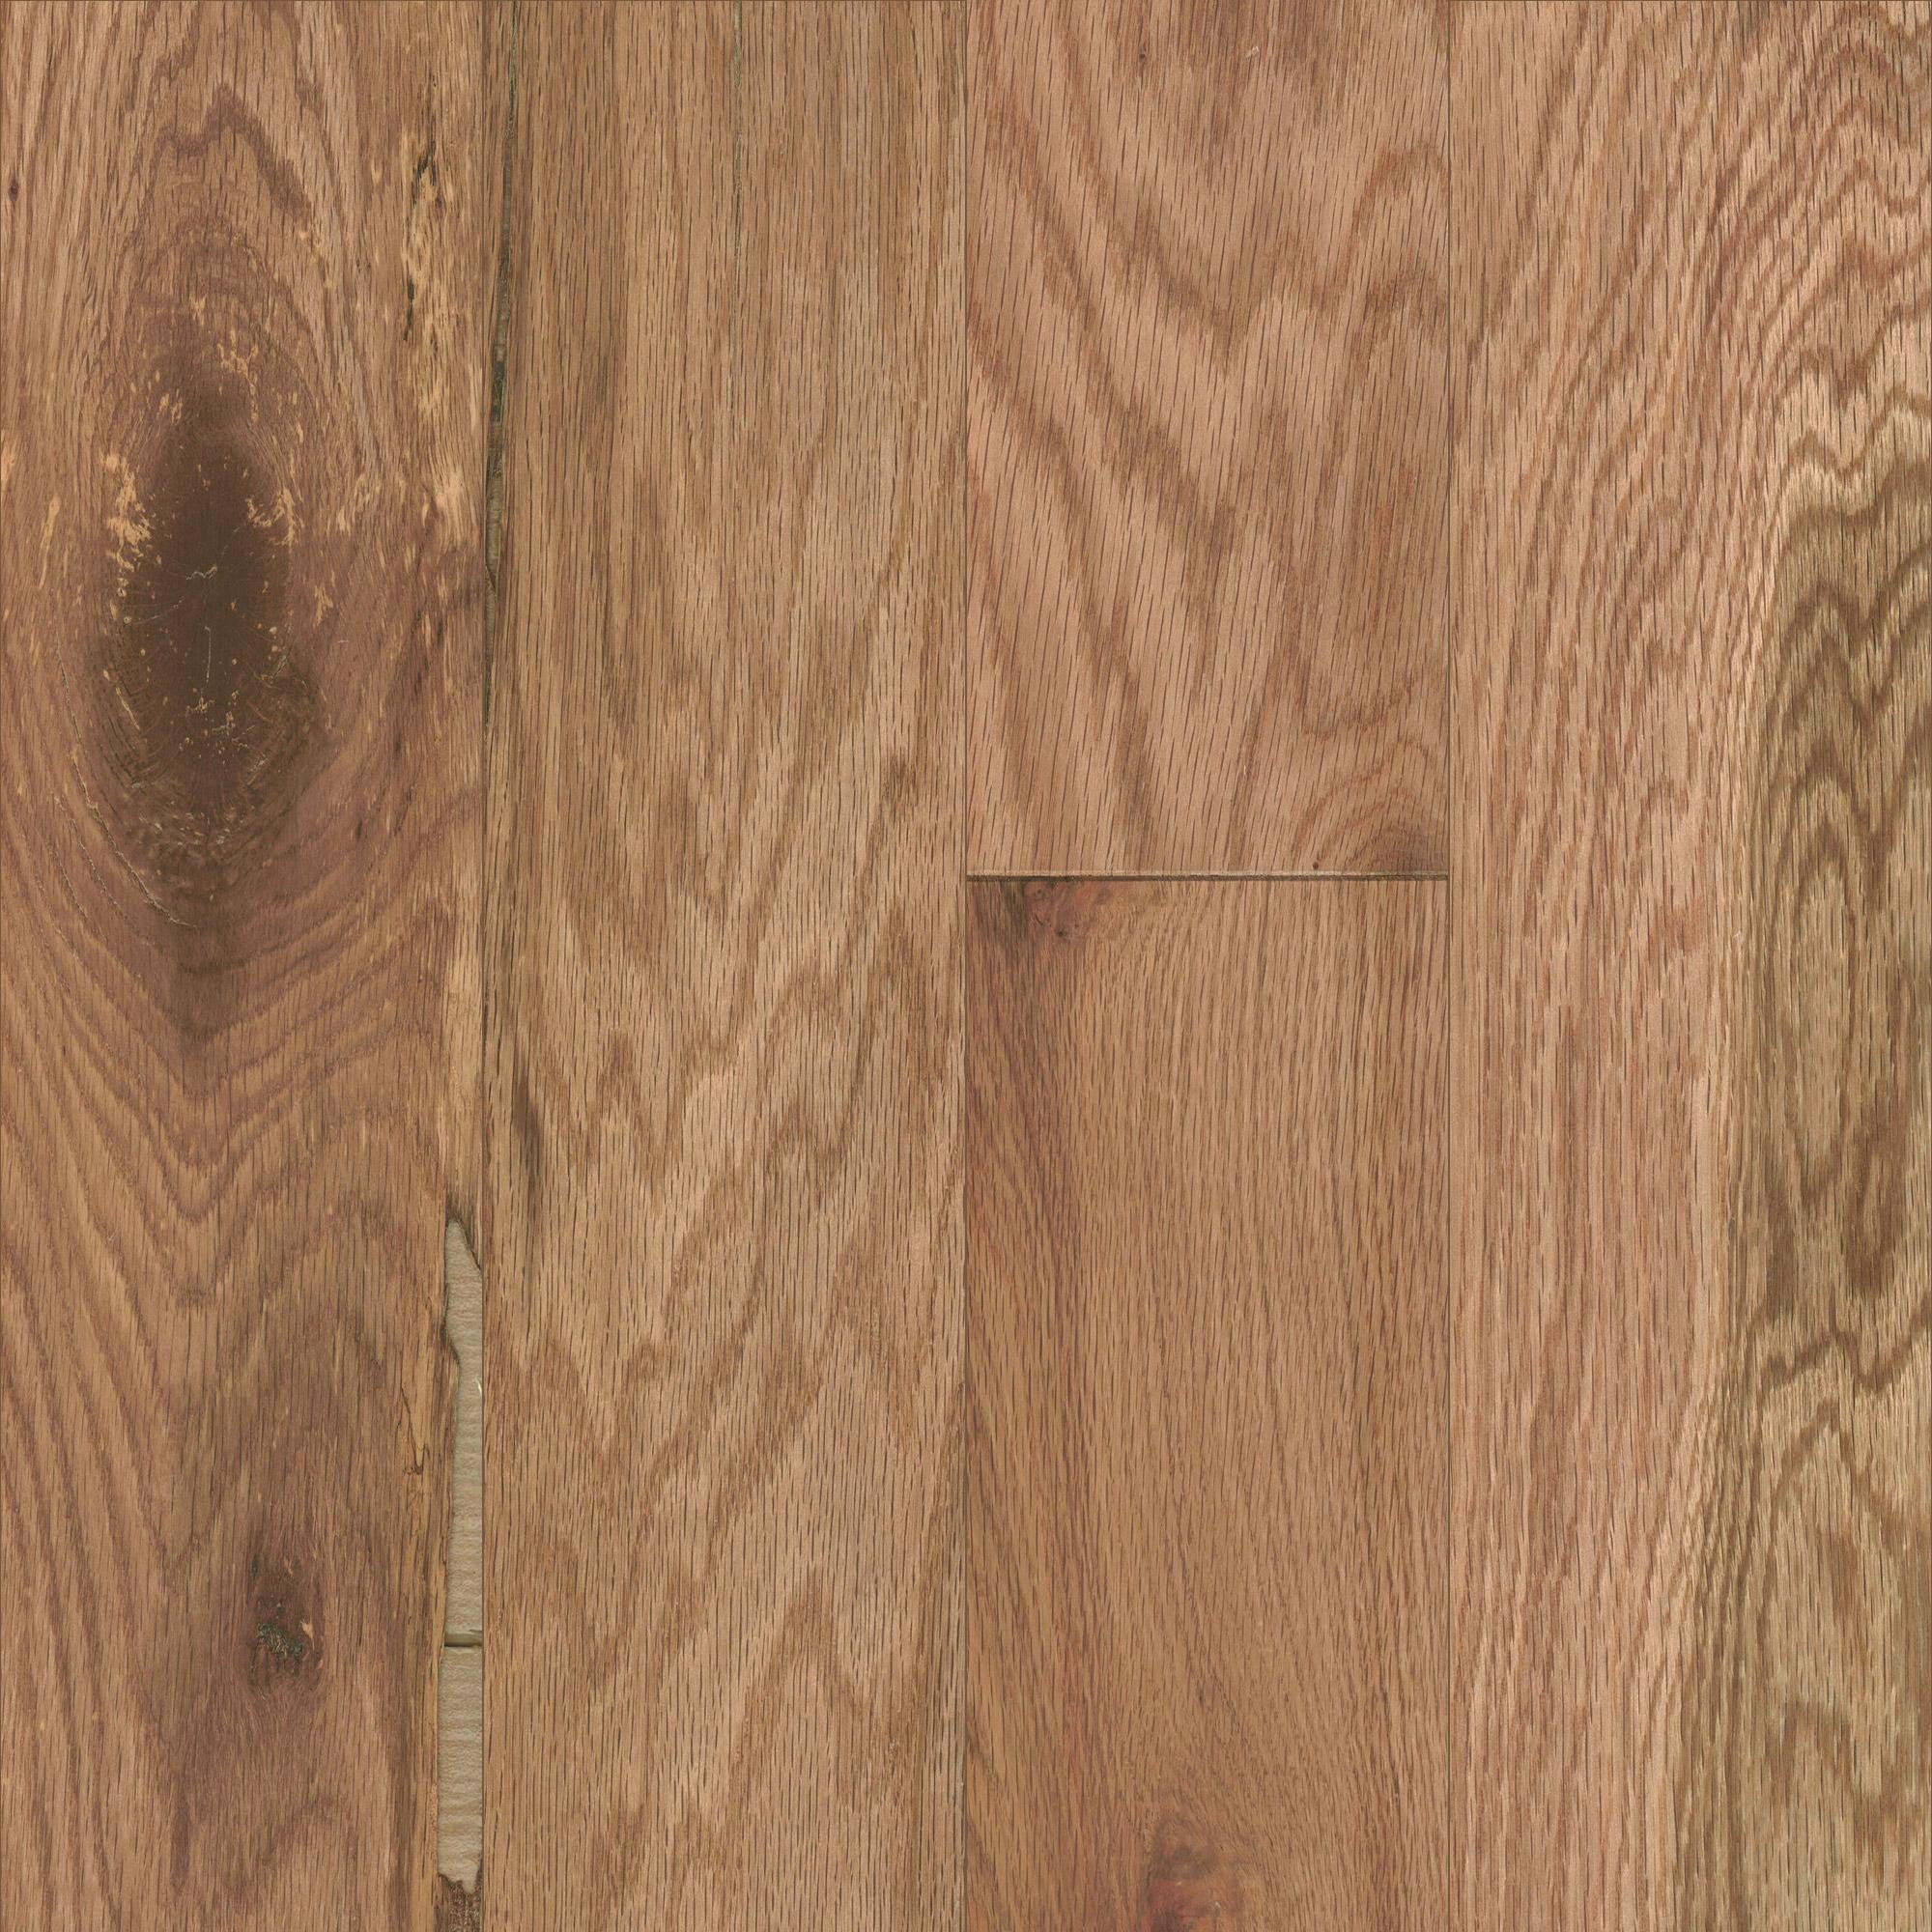 7 inch wide engineered hardwood flooring of mullican ridgecrest red oak natural 1 2 thick 5 wide engineered with mullican ridgecrest red oak natural 1 2 thick 5 wide engineered hardwood flooring